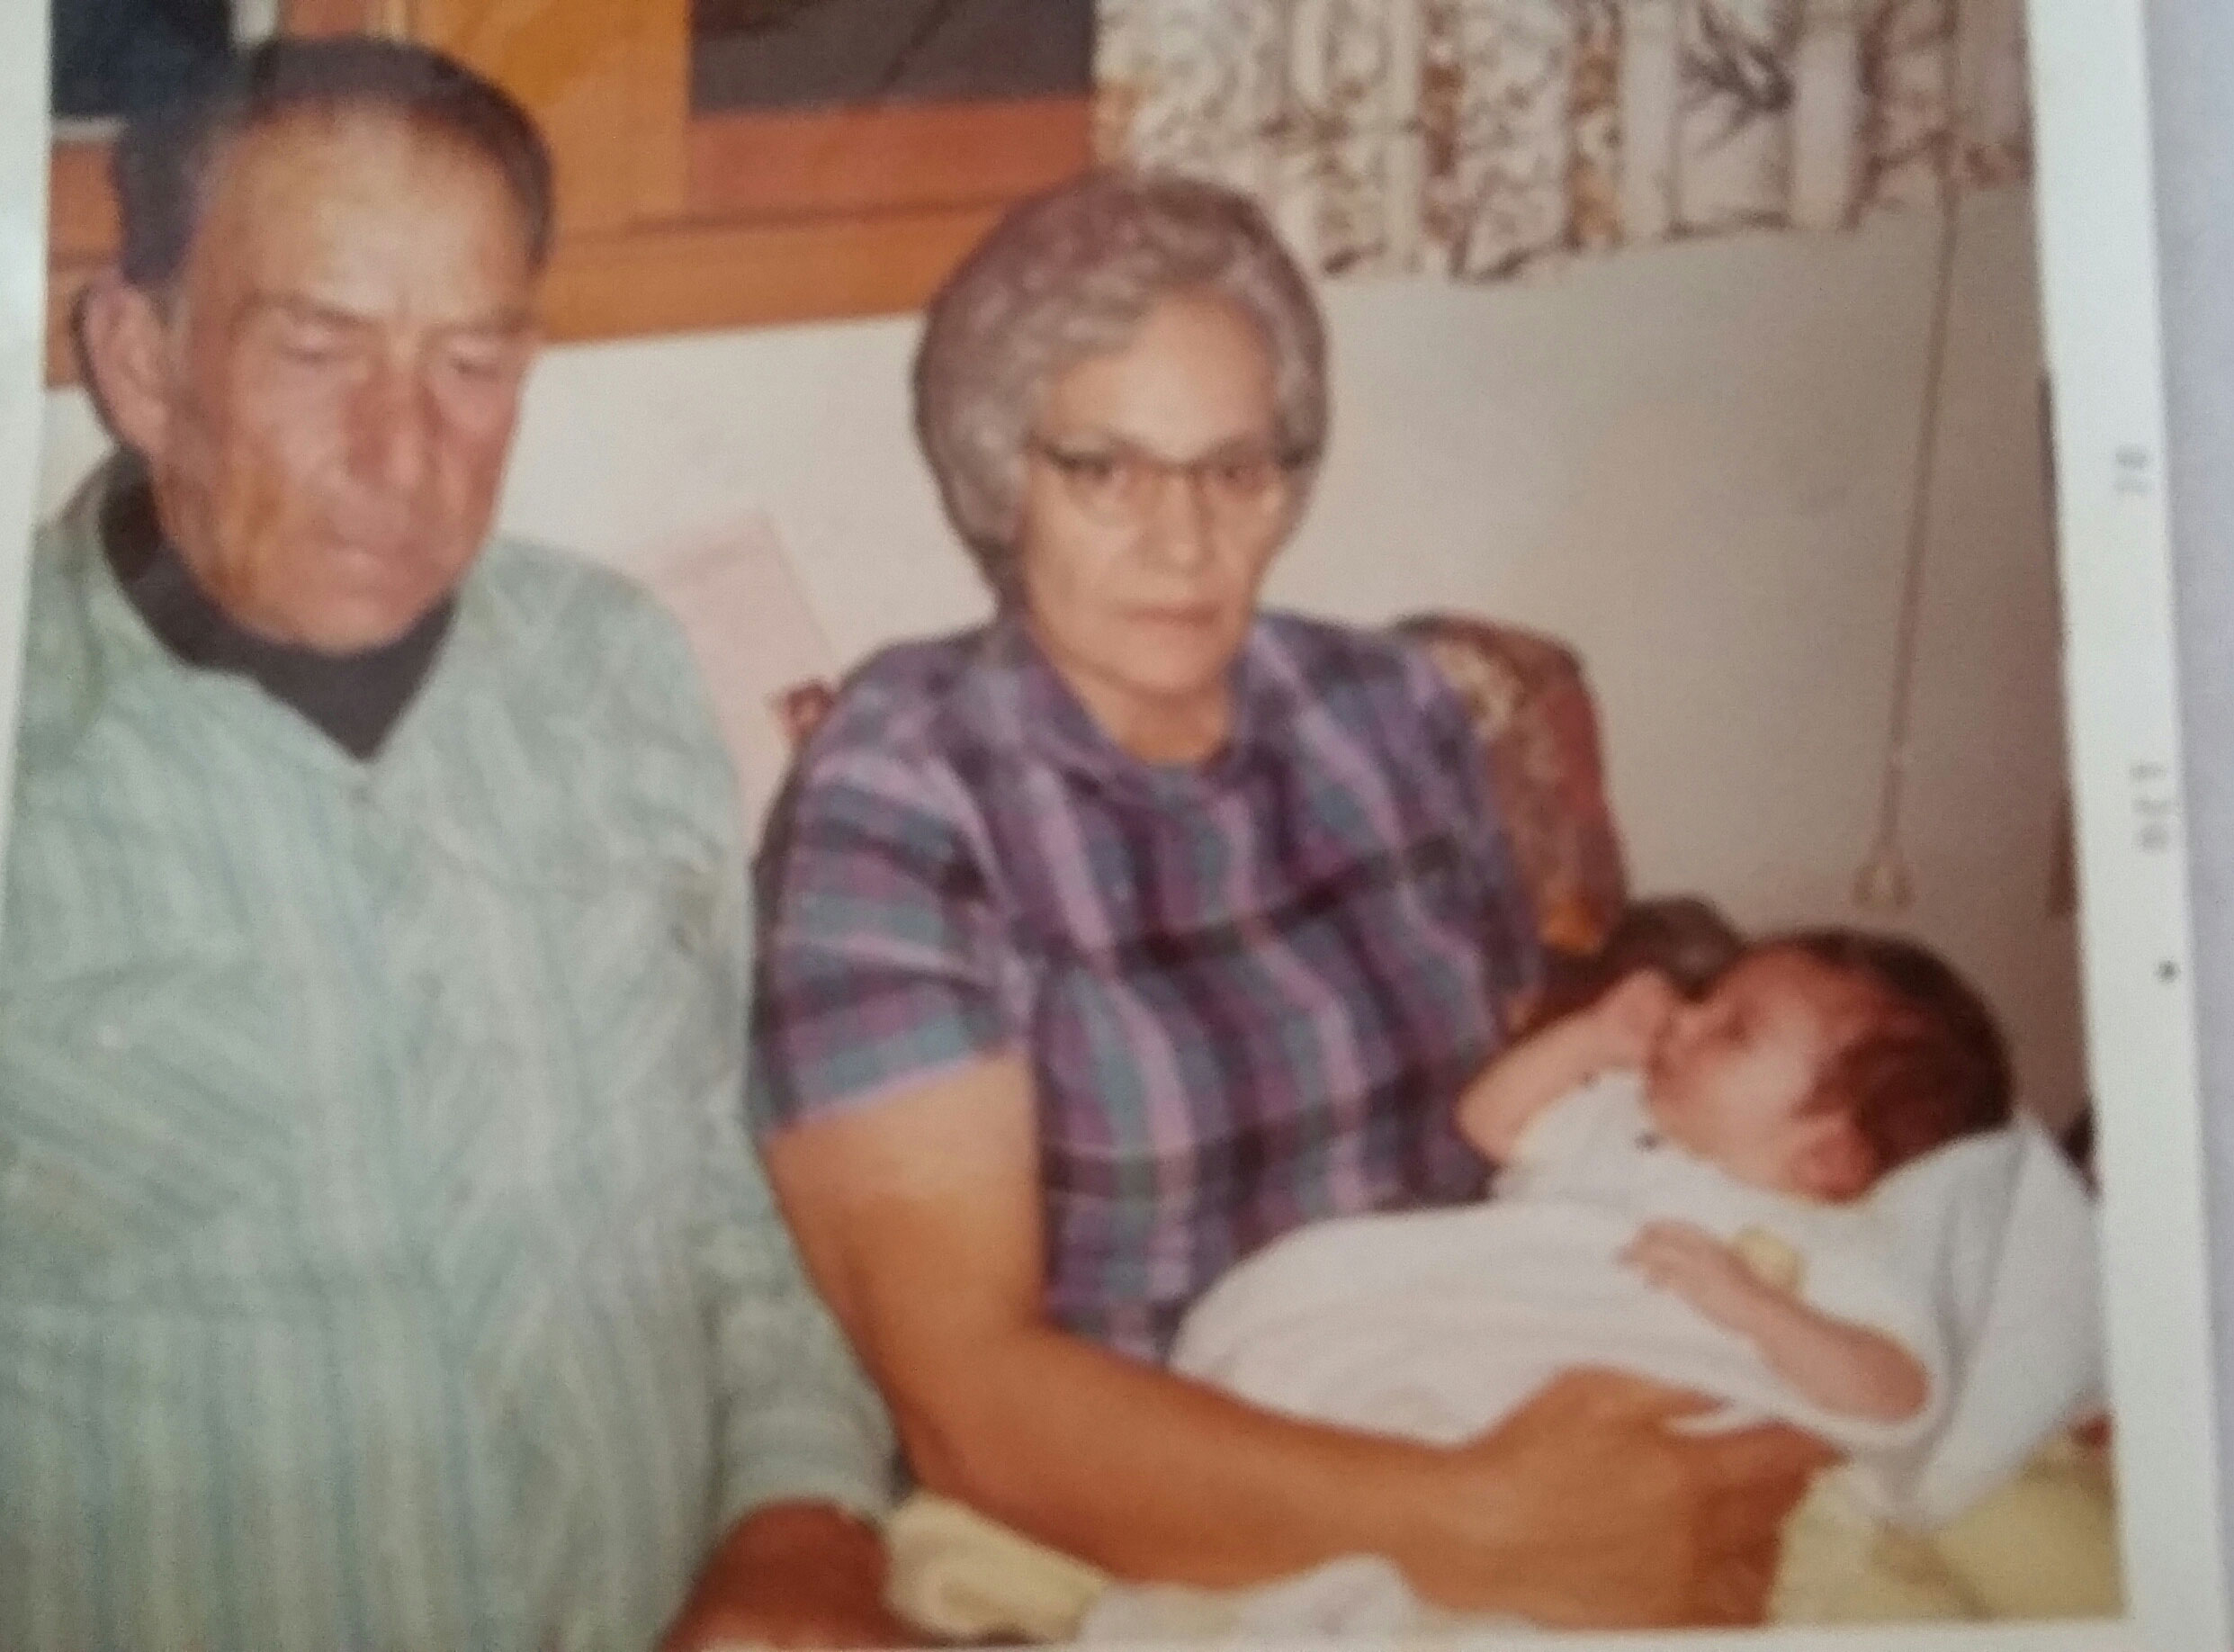 This is a picture of my Uncle Bud and Aunt Jo showing traditional Lakota generosity as they hold my firstborn son Clint.